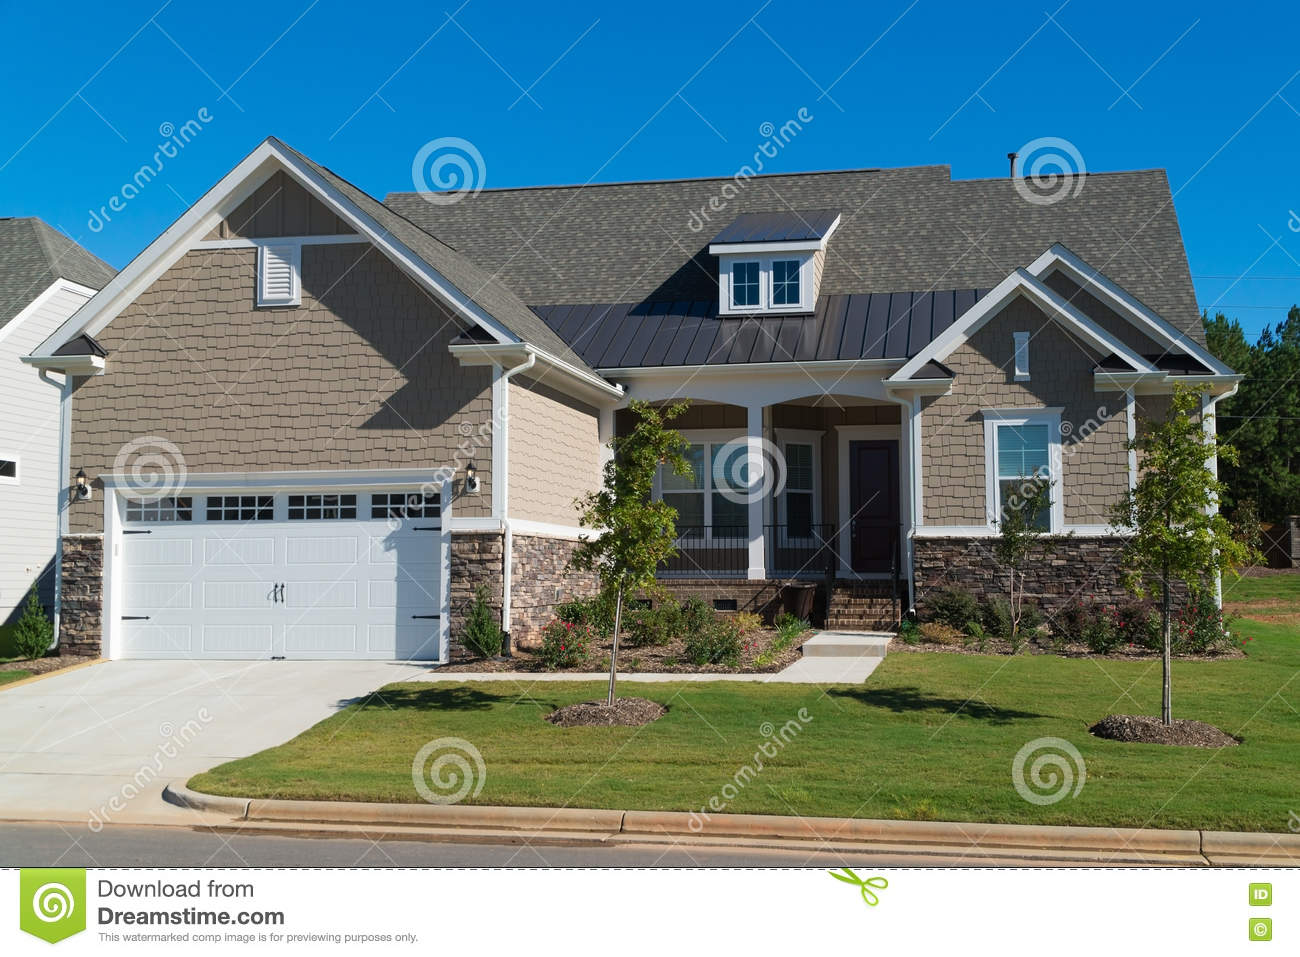 Newly landscaped luxury home royalty free stock photo for Free luxury home images